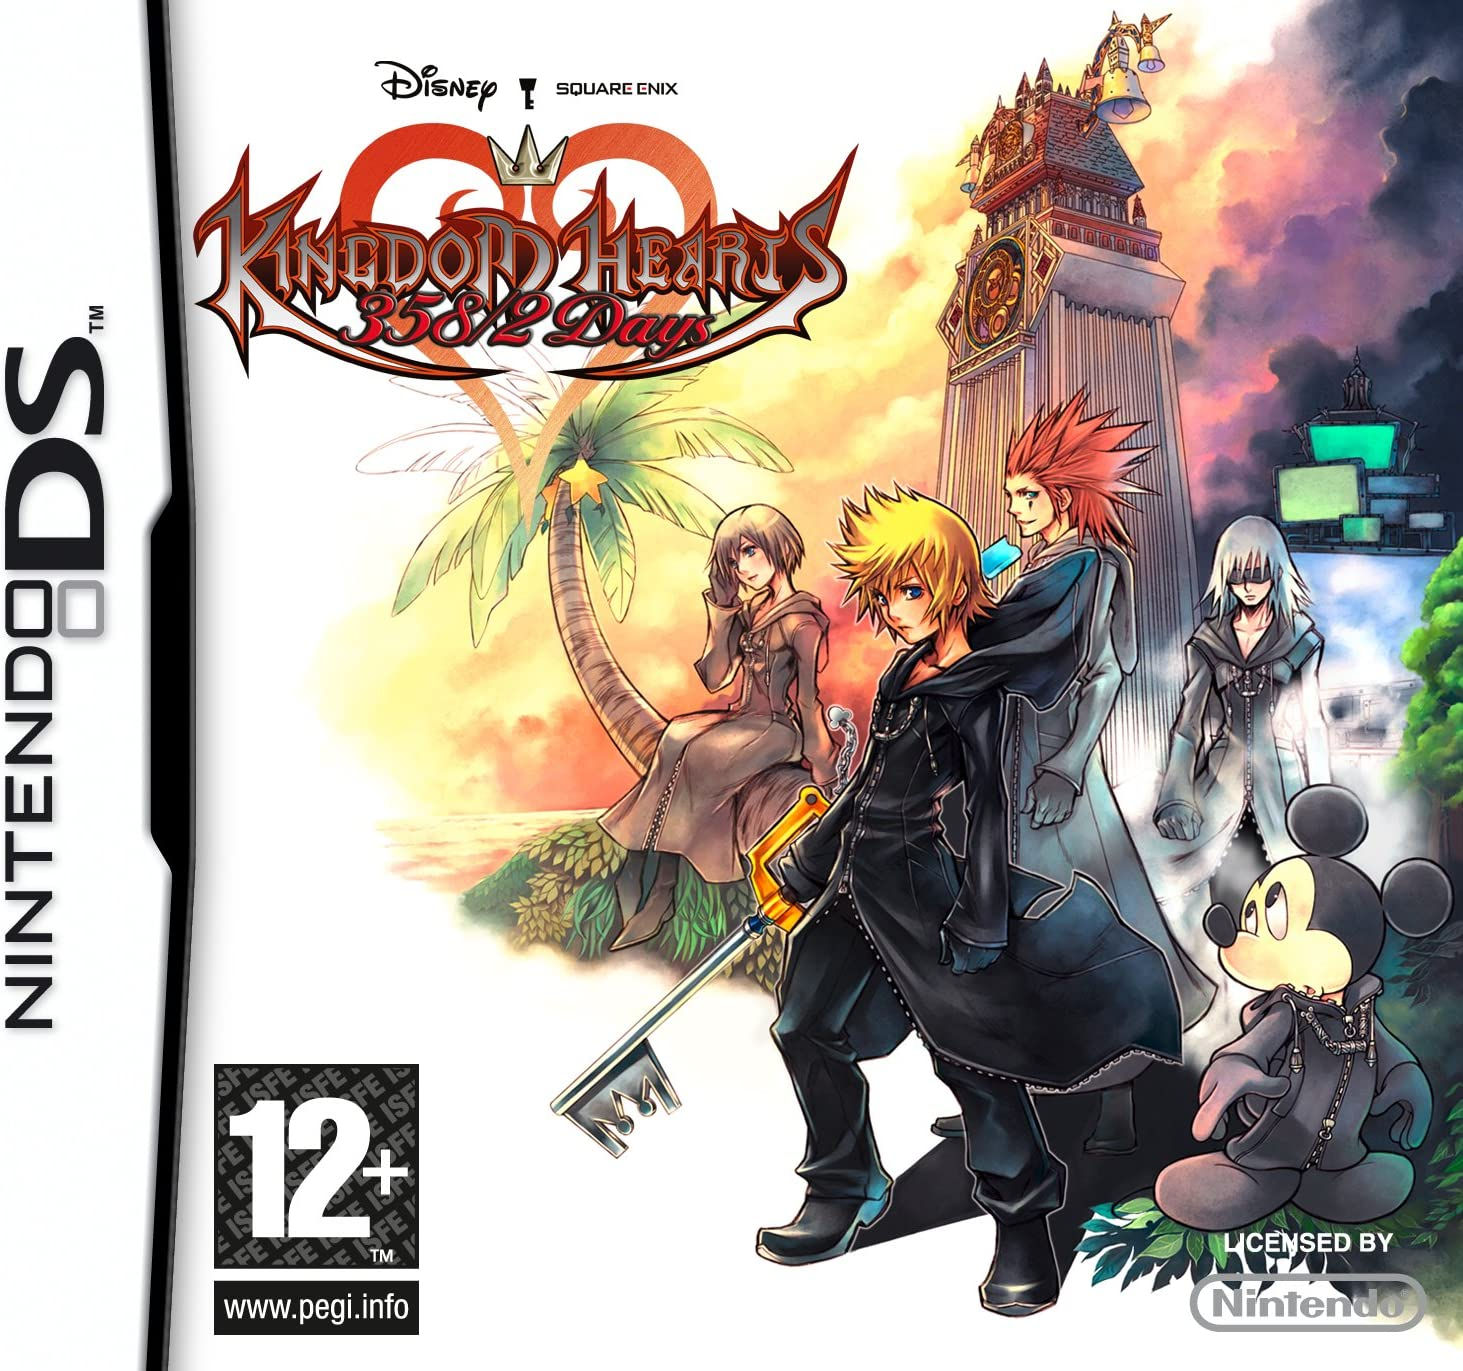 KINGDOM NDS CODED TÉLÉCHARGER RE FR HEARTS